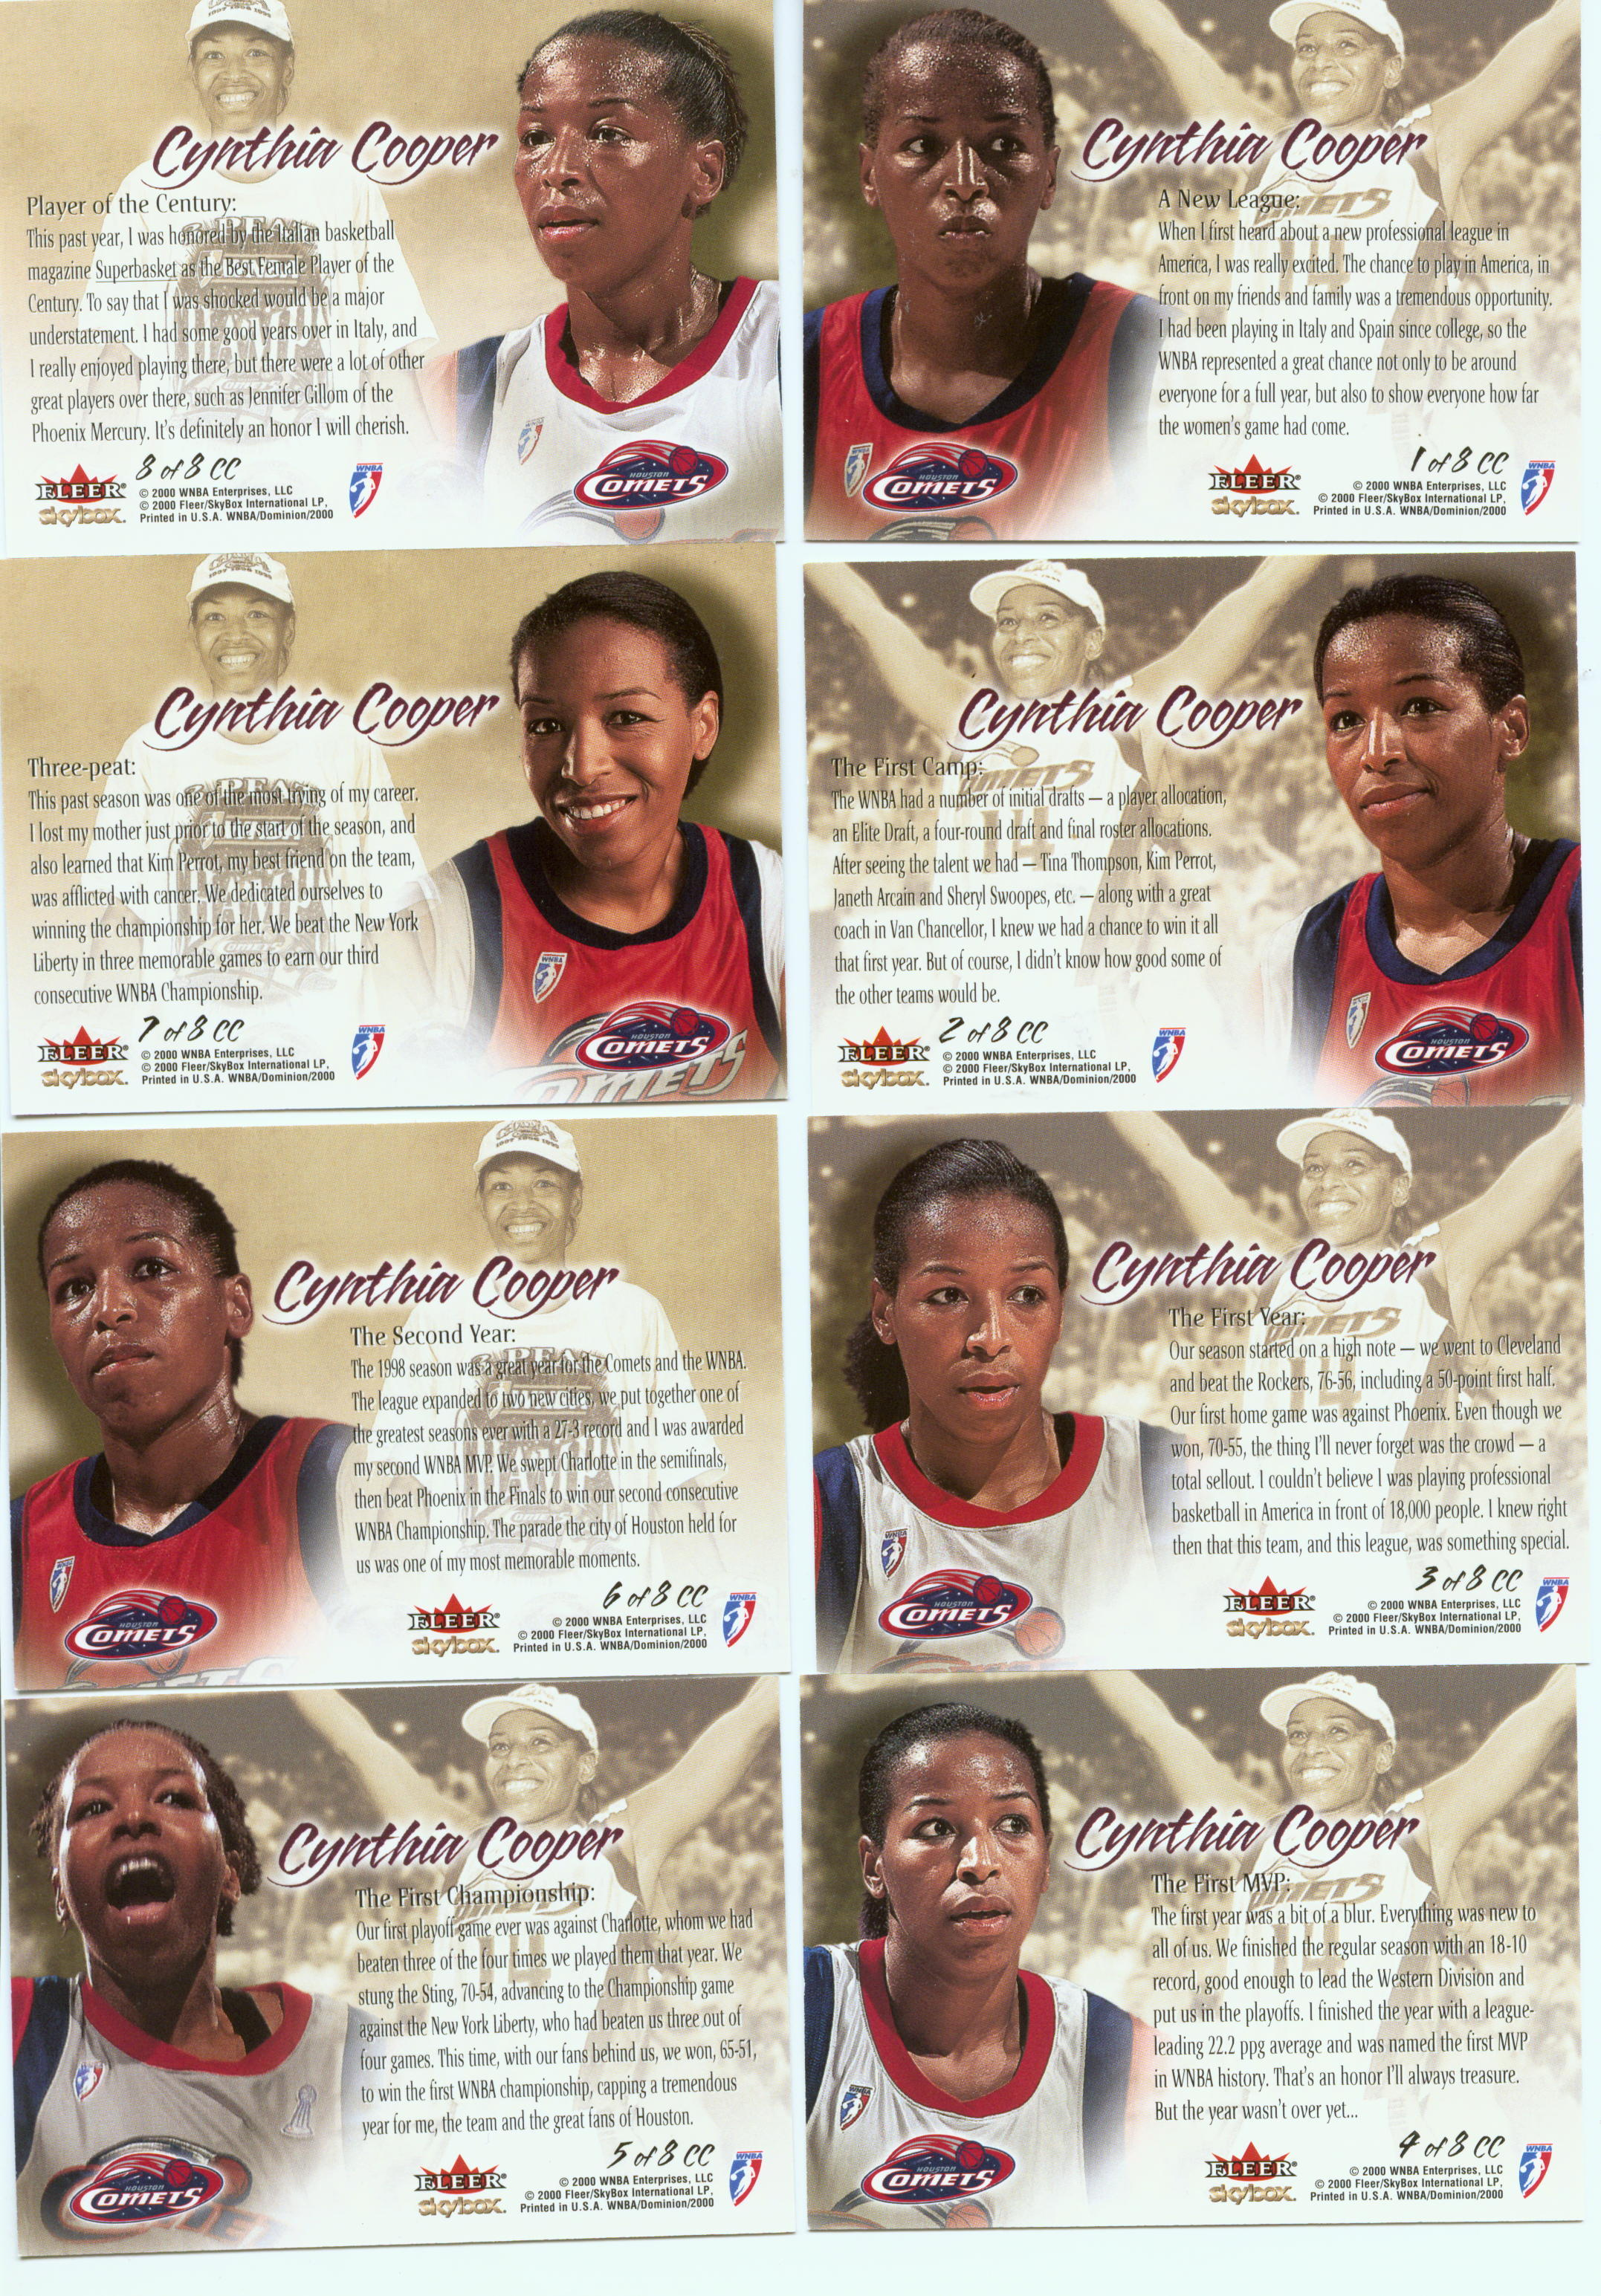 2000 WNBA Cynthia Cooper Collection Dominion